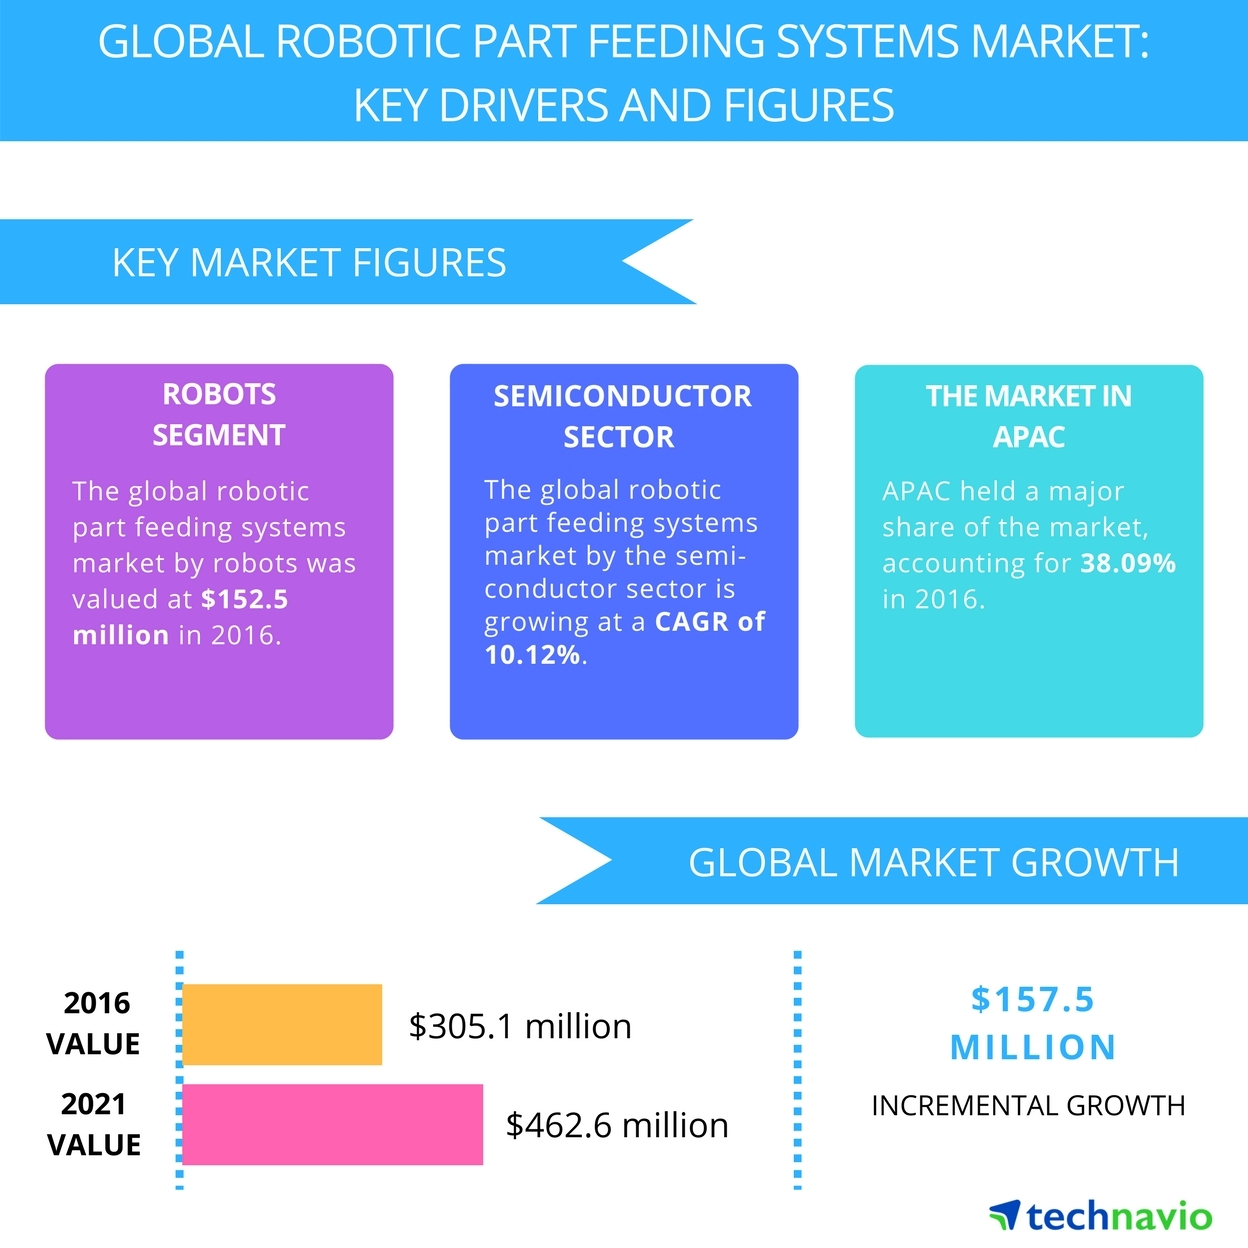 Top 3 Emerging Trends Impacting The Global Robotic Part Feeding